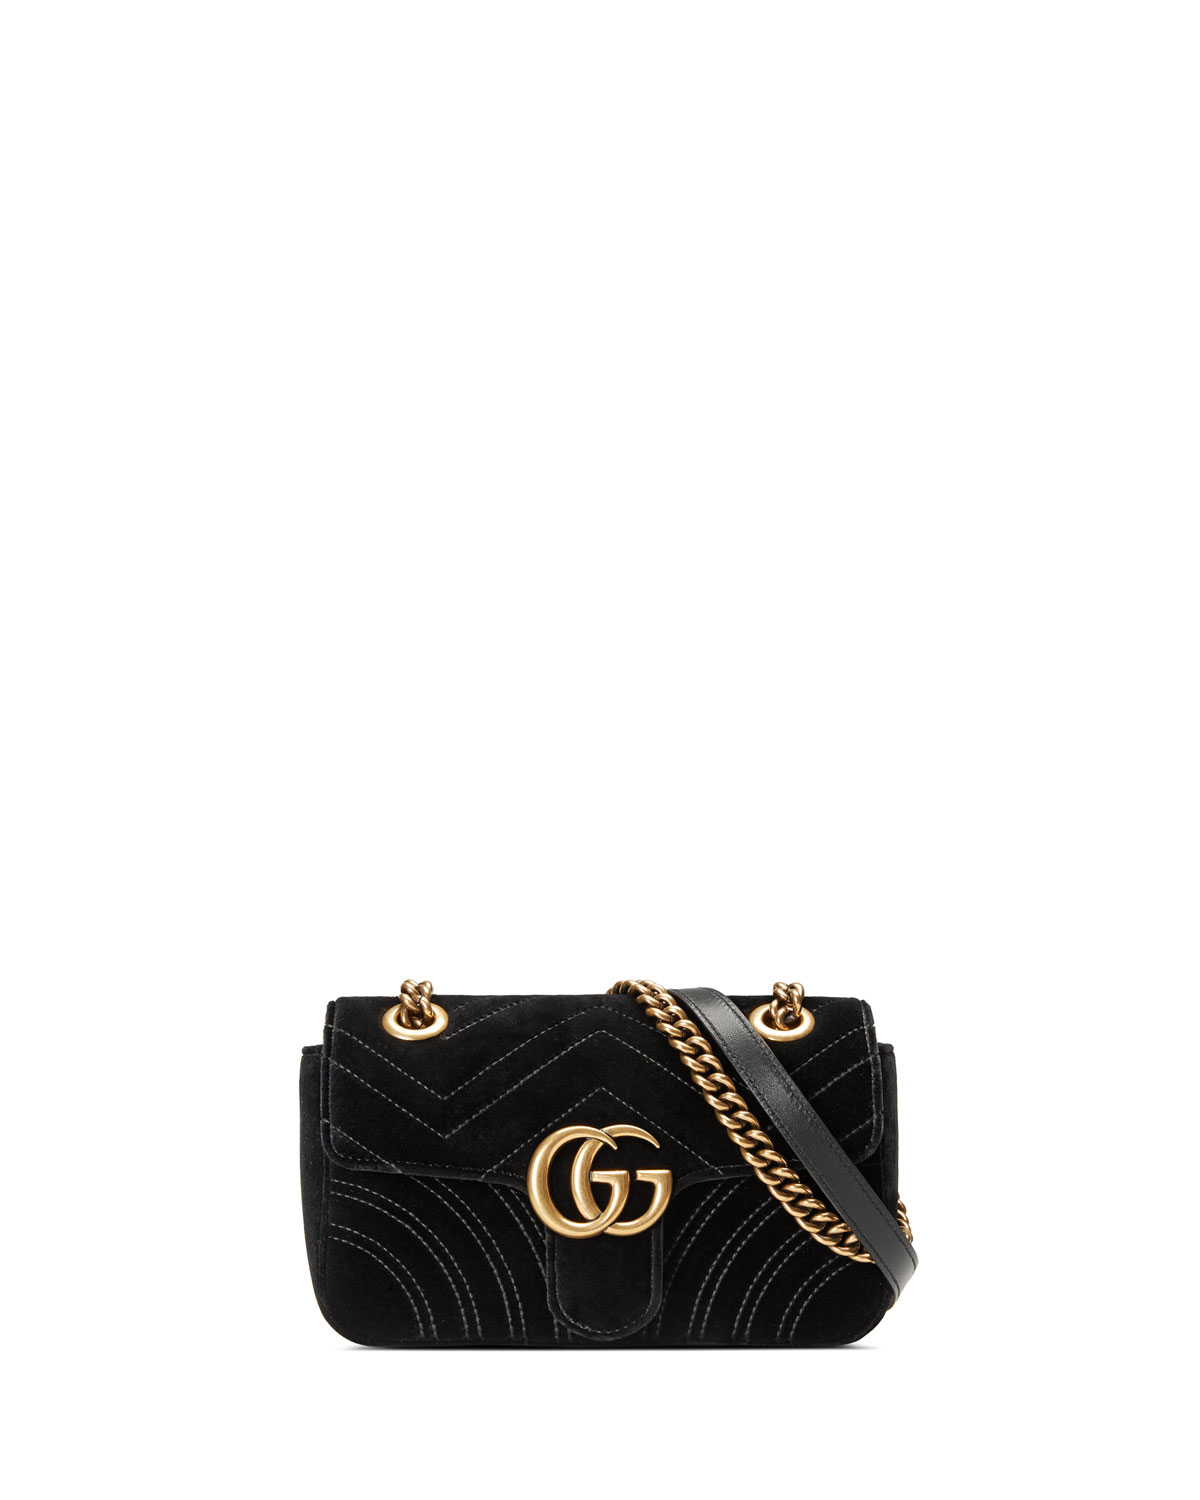 Gucci GG Marmont Mini Quilted Velvet Crossbody Bag c3bd2c35f5d1c